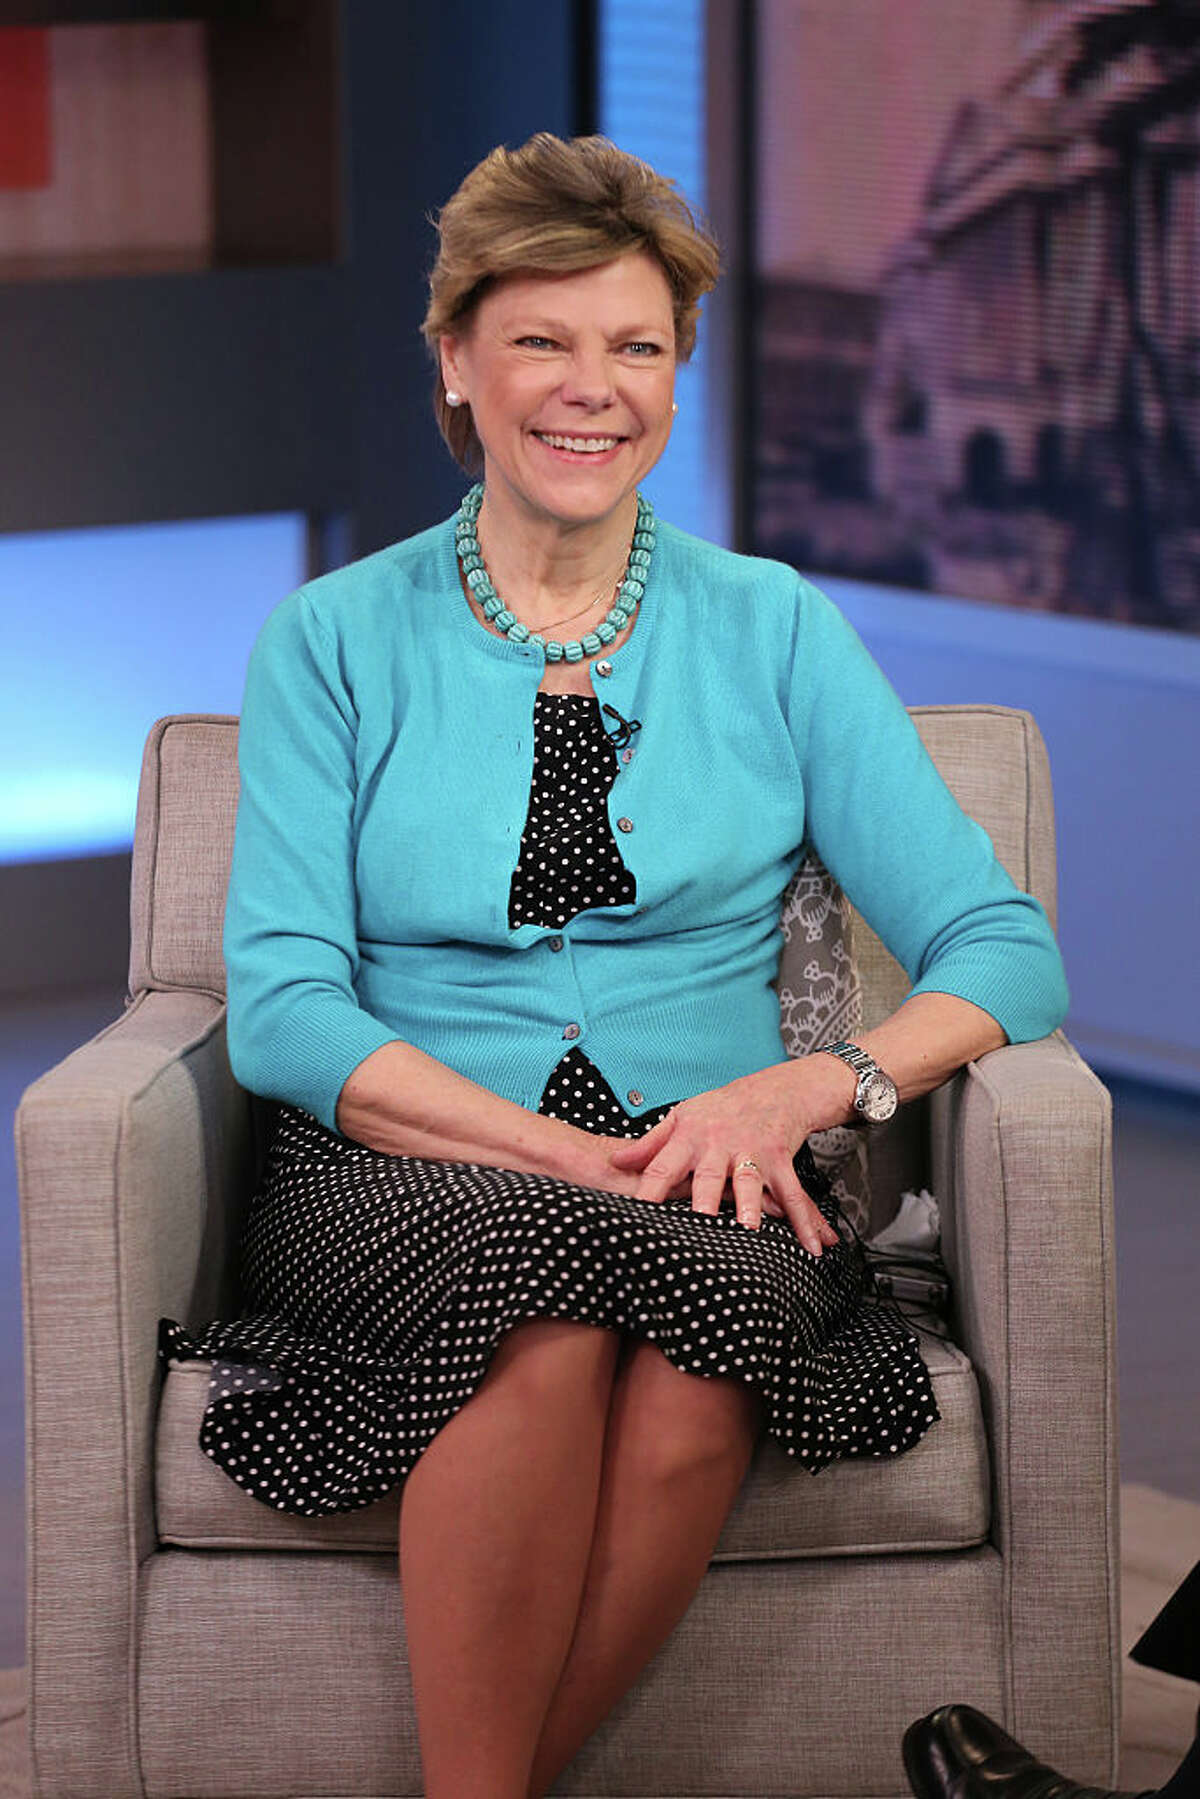 """GOOD MORNING AMERICA - Cokie Roberts talks about her new book, """"Capital Dames"""" on """"Good Morning America,"""" 4/14/15, airing on the Walt Disney Television via Getty Images Television Network. (Photo Fred Lee/Walt Disney Television via Getty Images)"""